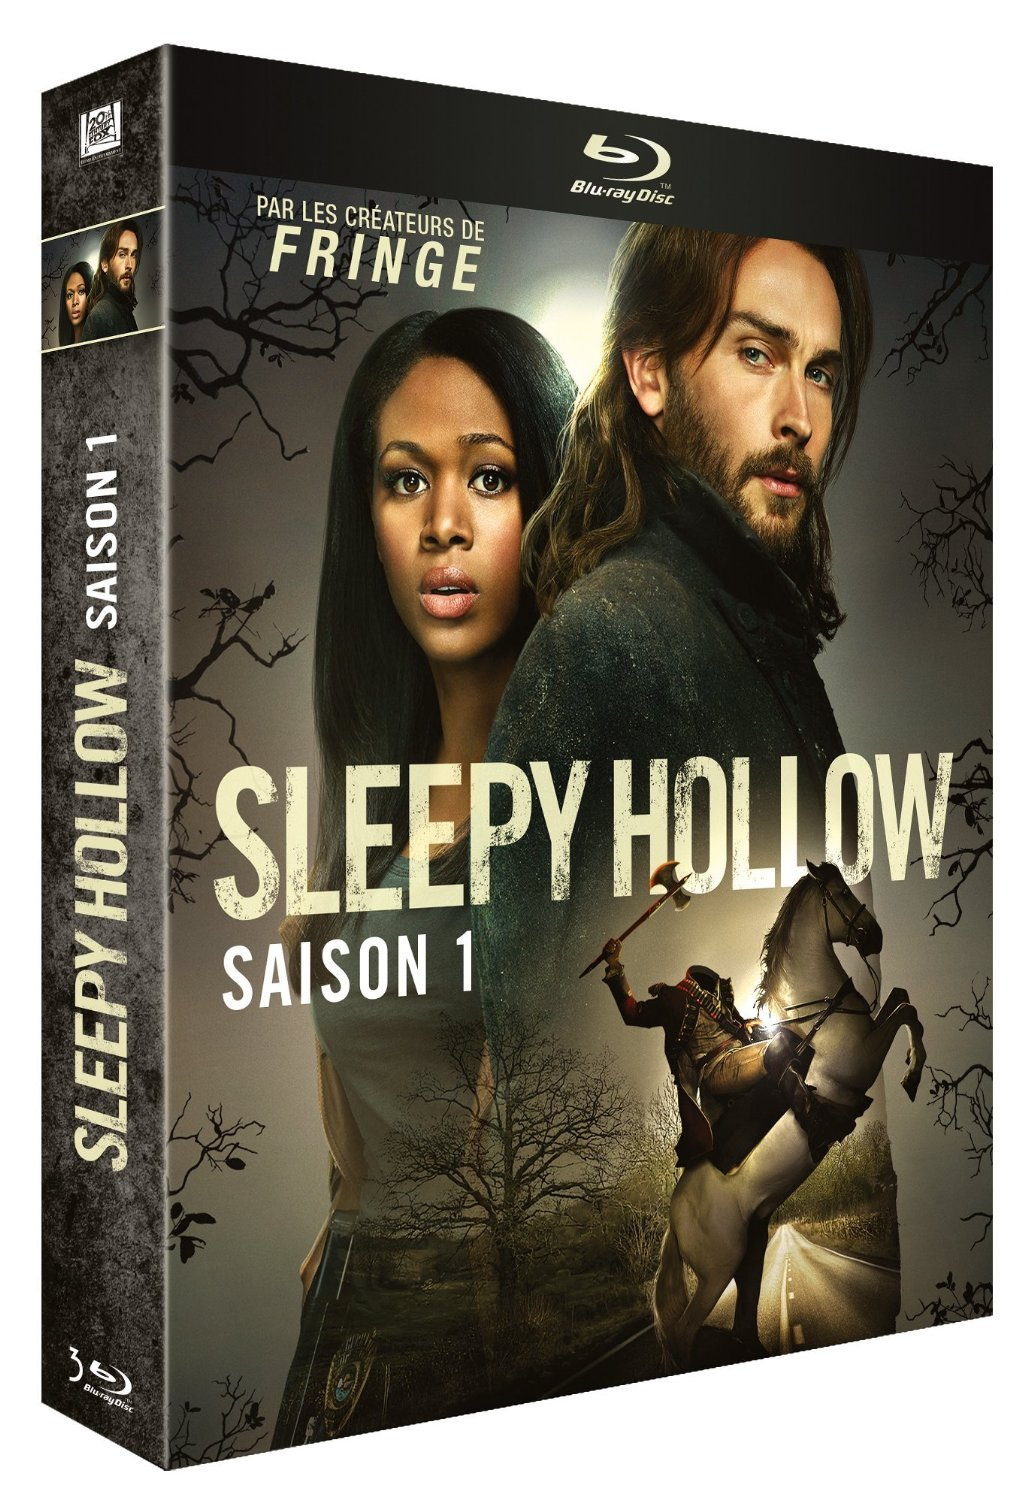 Sleepy Hollow 1 - Sleepy Hollow - Saison 1